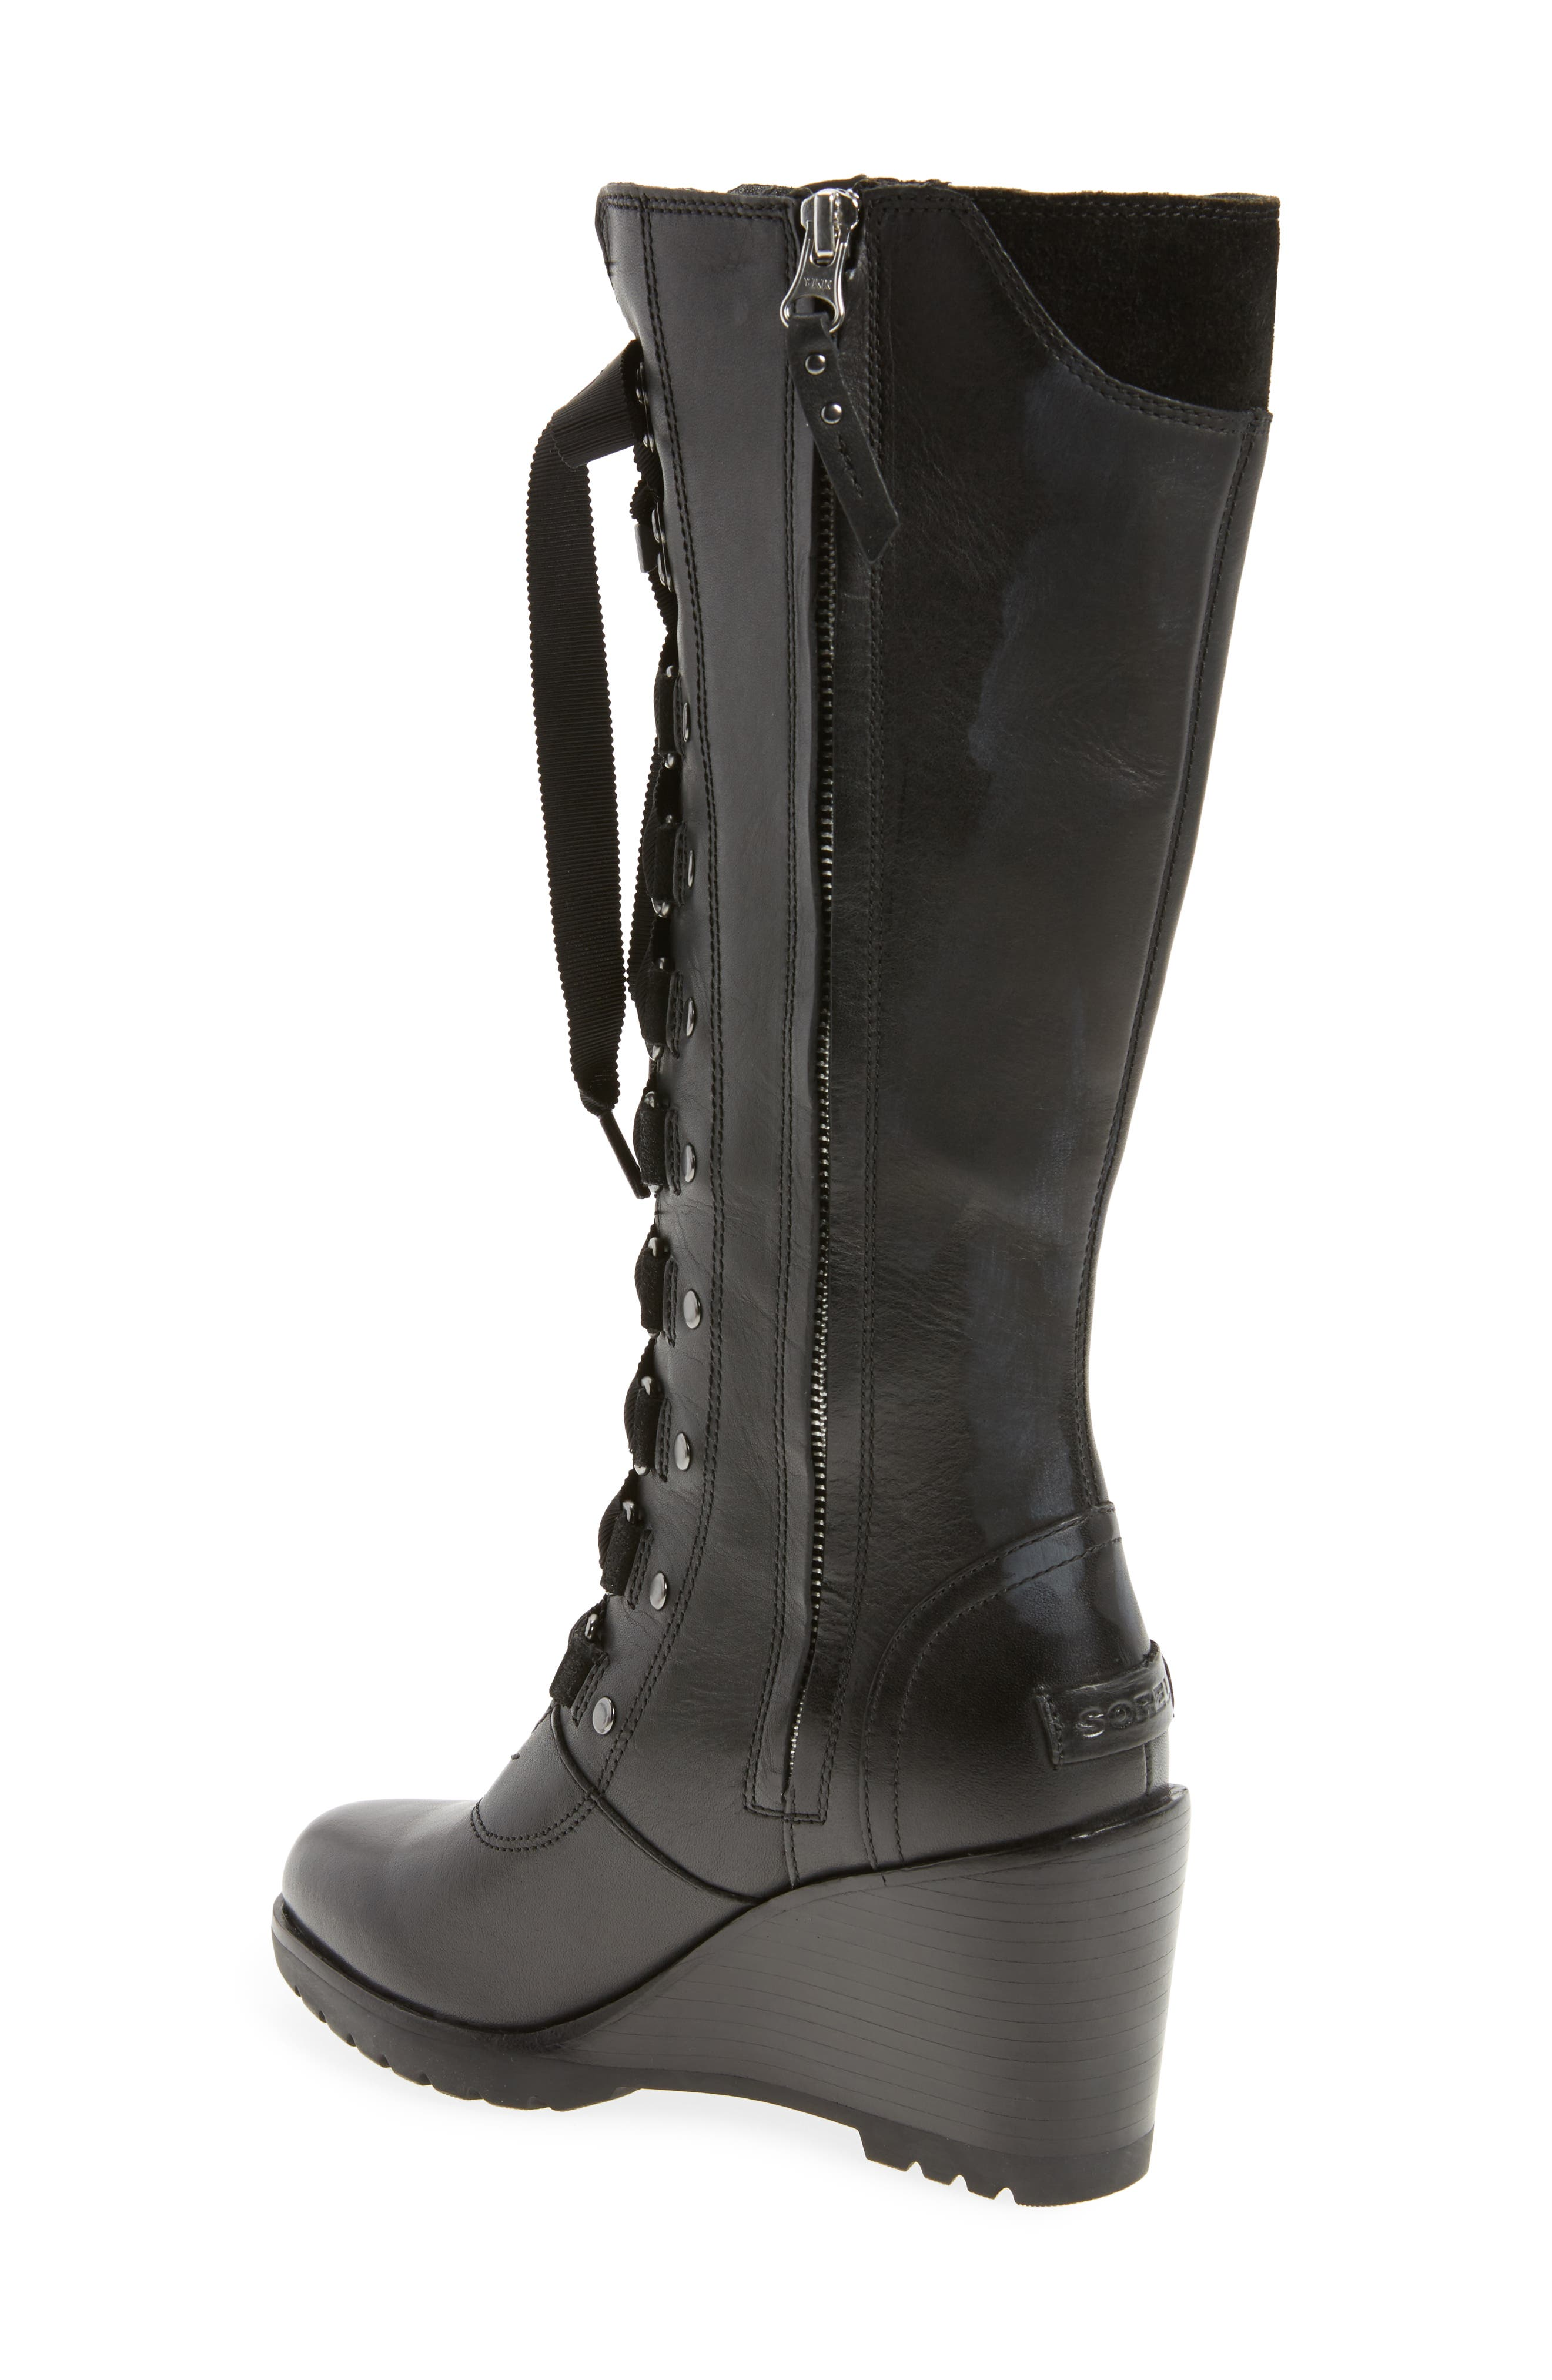 After Hours Lace Up Wedge Boot,                             Alternate thumbnail 2, color,                             010